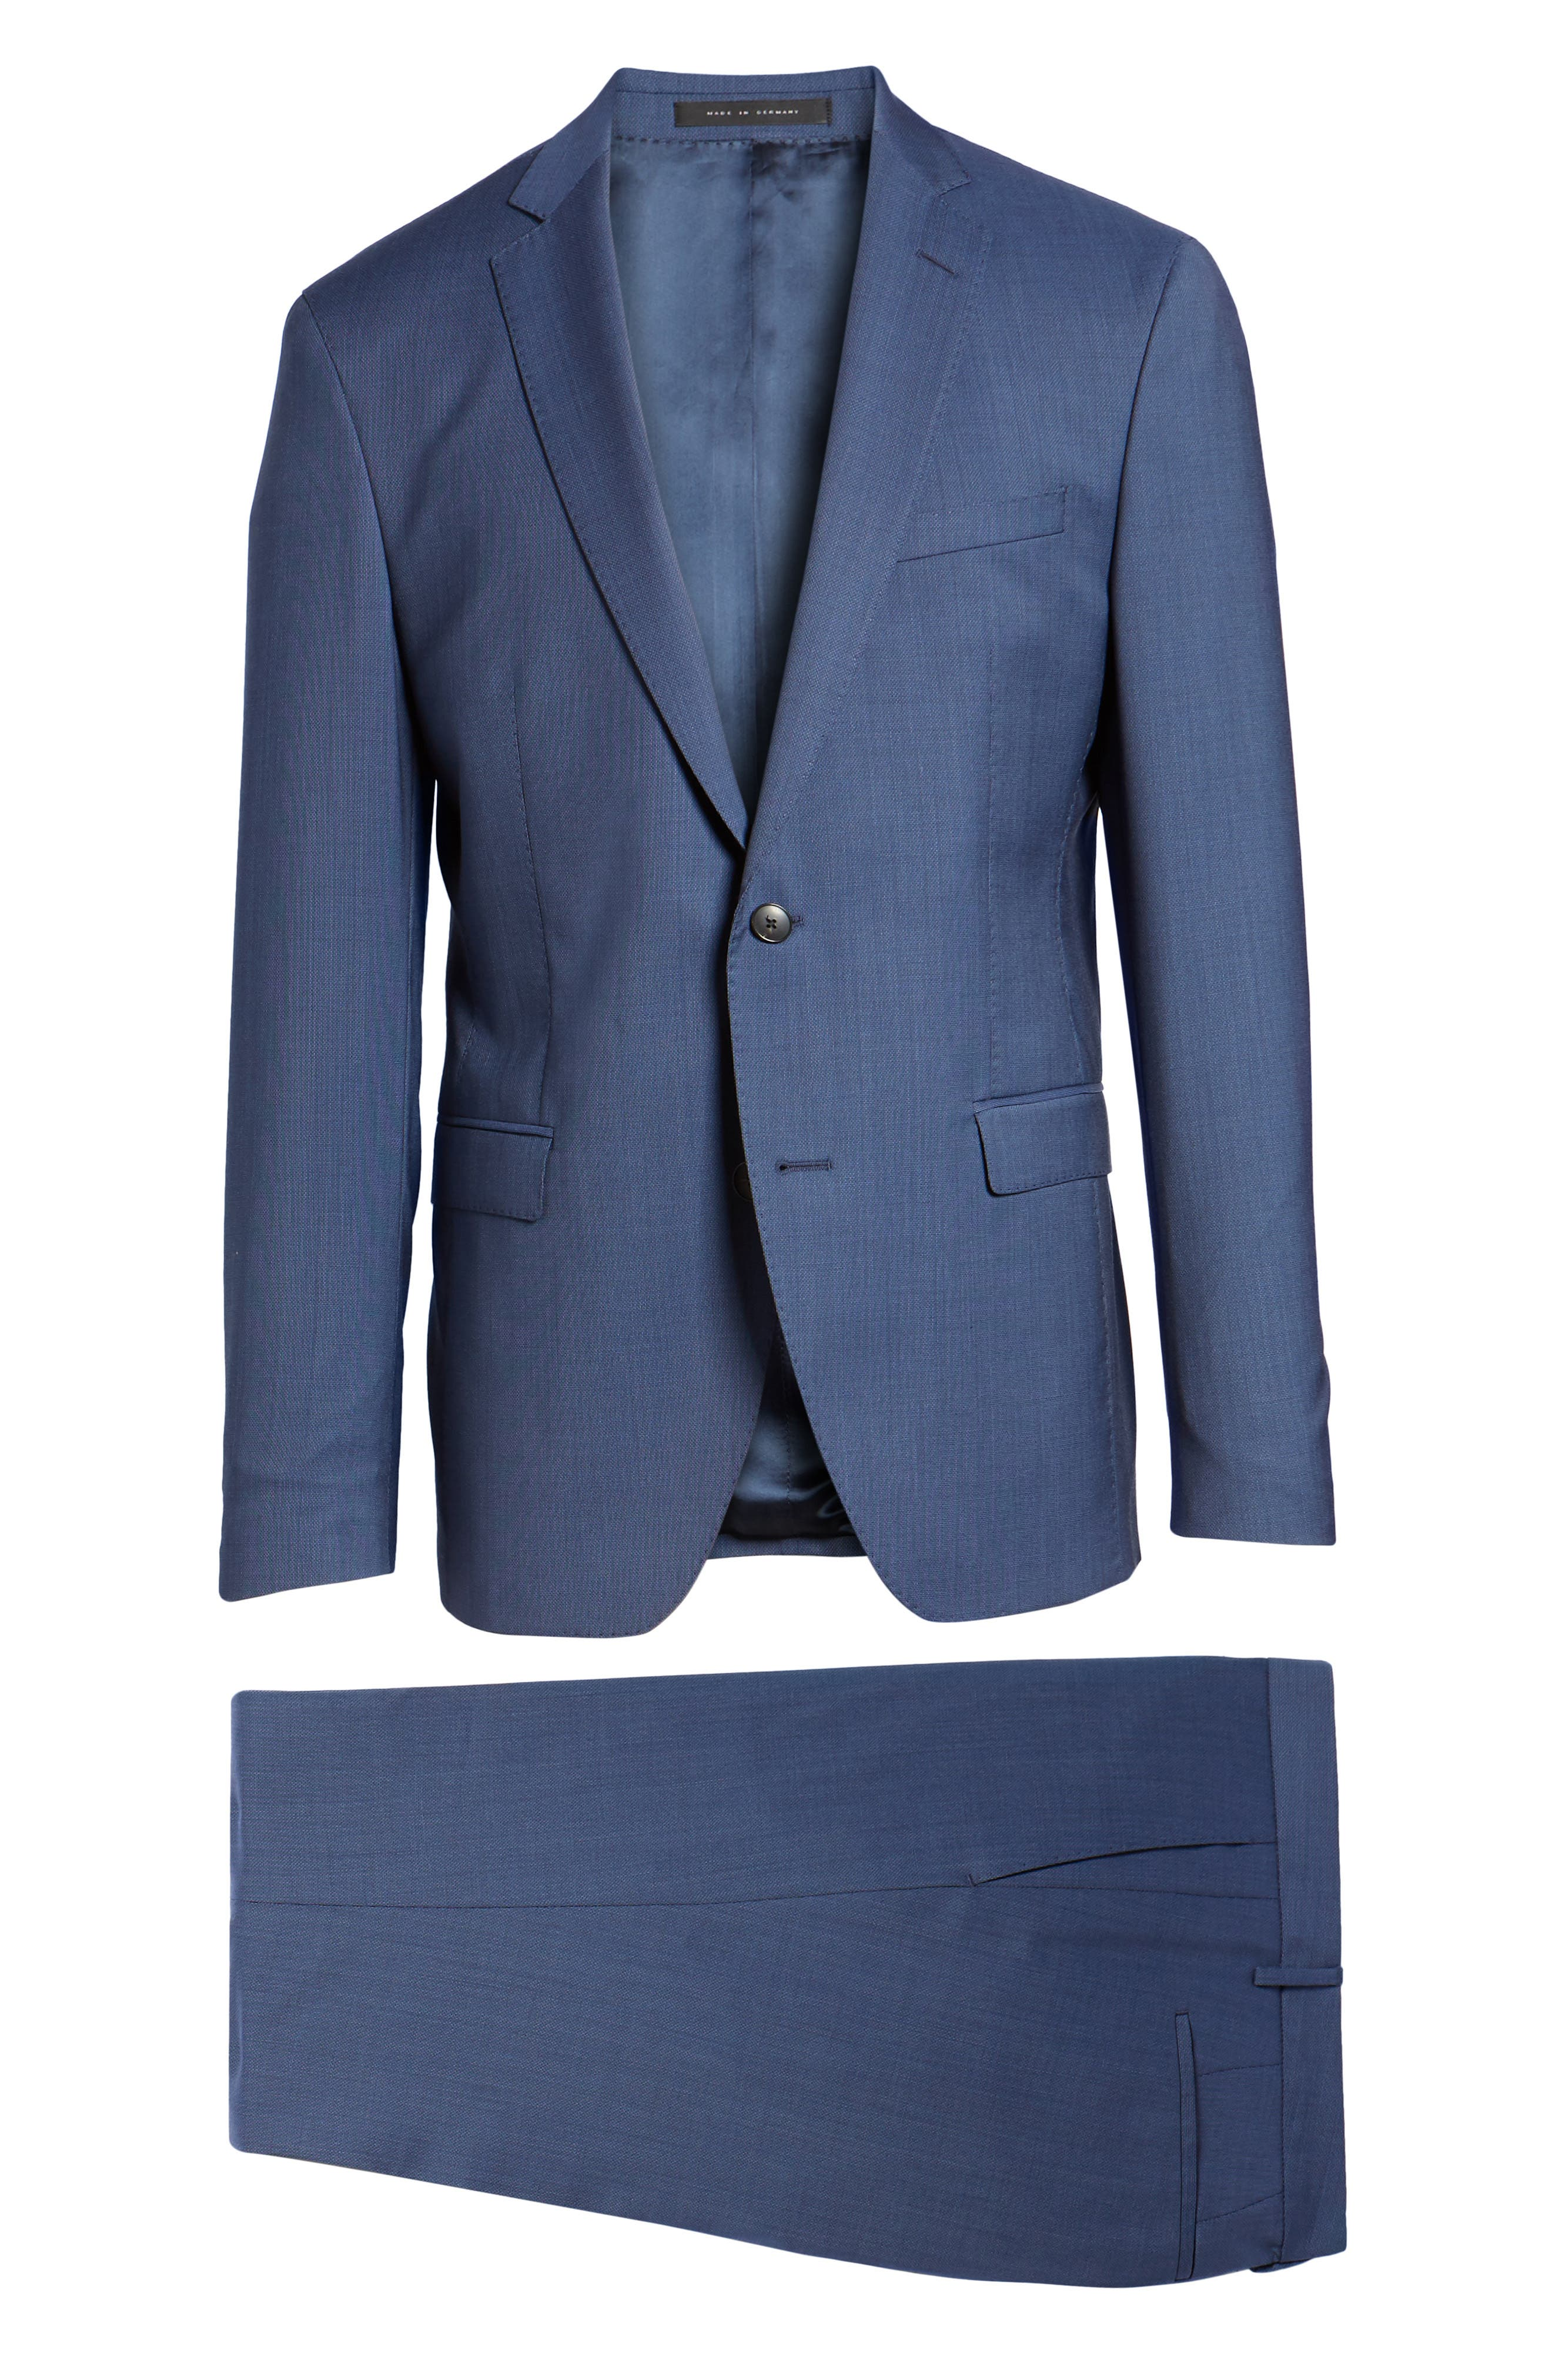 Reyno/Wave Extra Trim Fit Solid Wool Suit,                             Alternate thumbnail 8, color,                             Medium Blue